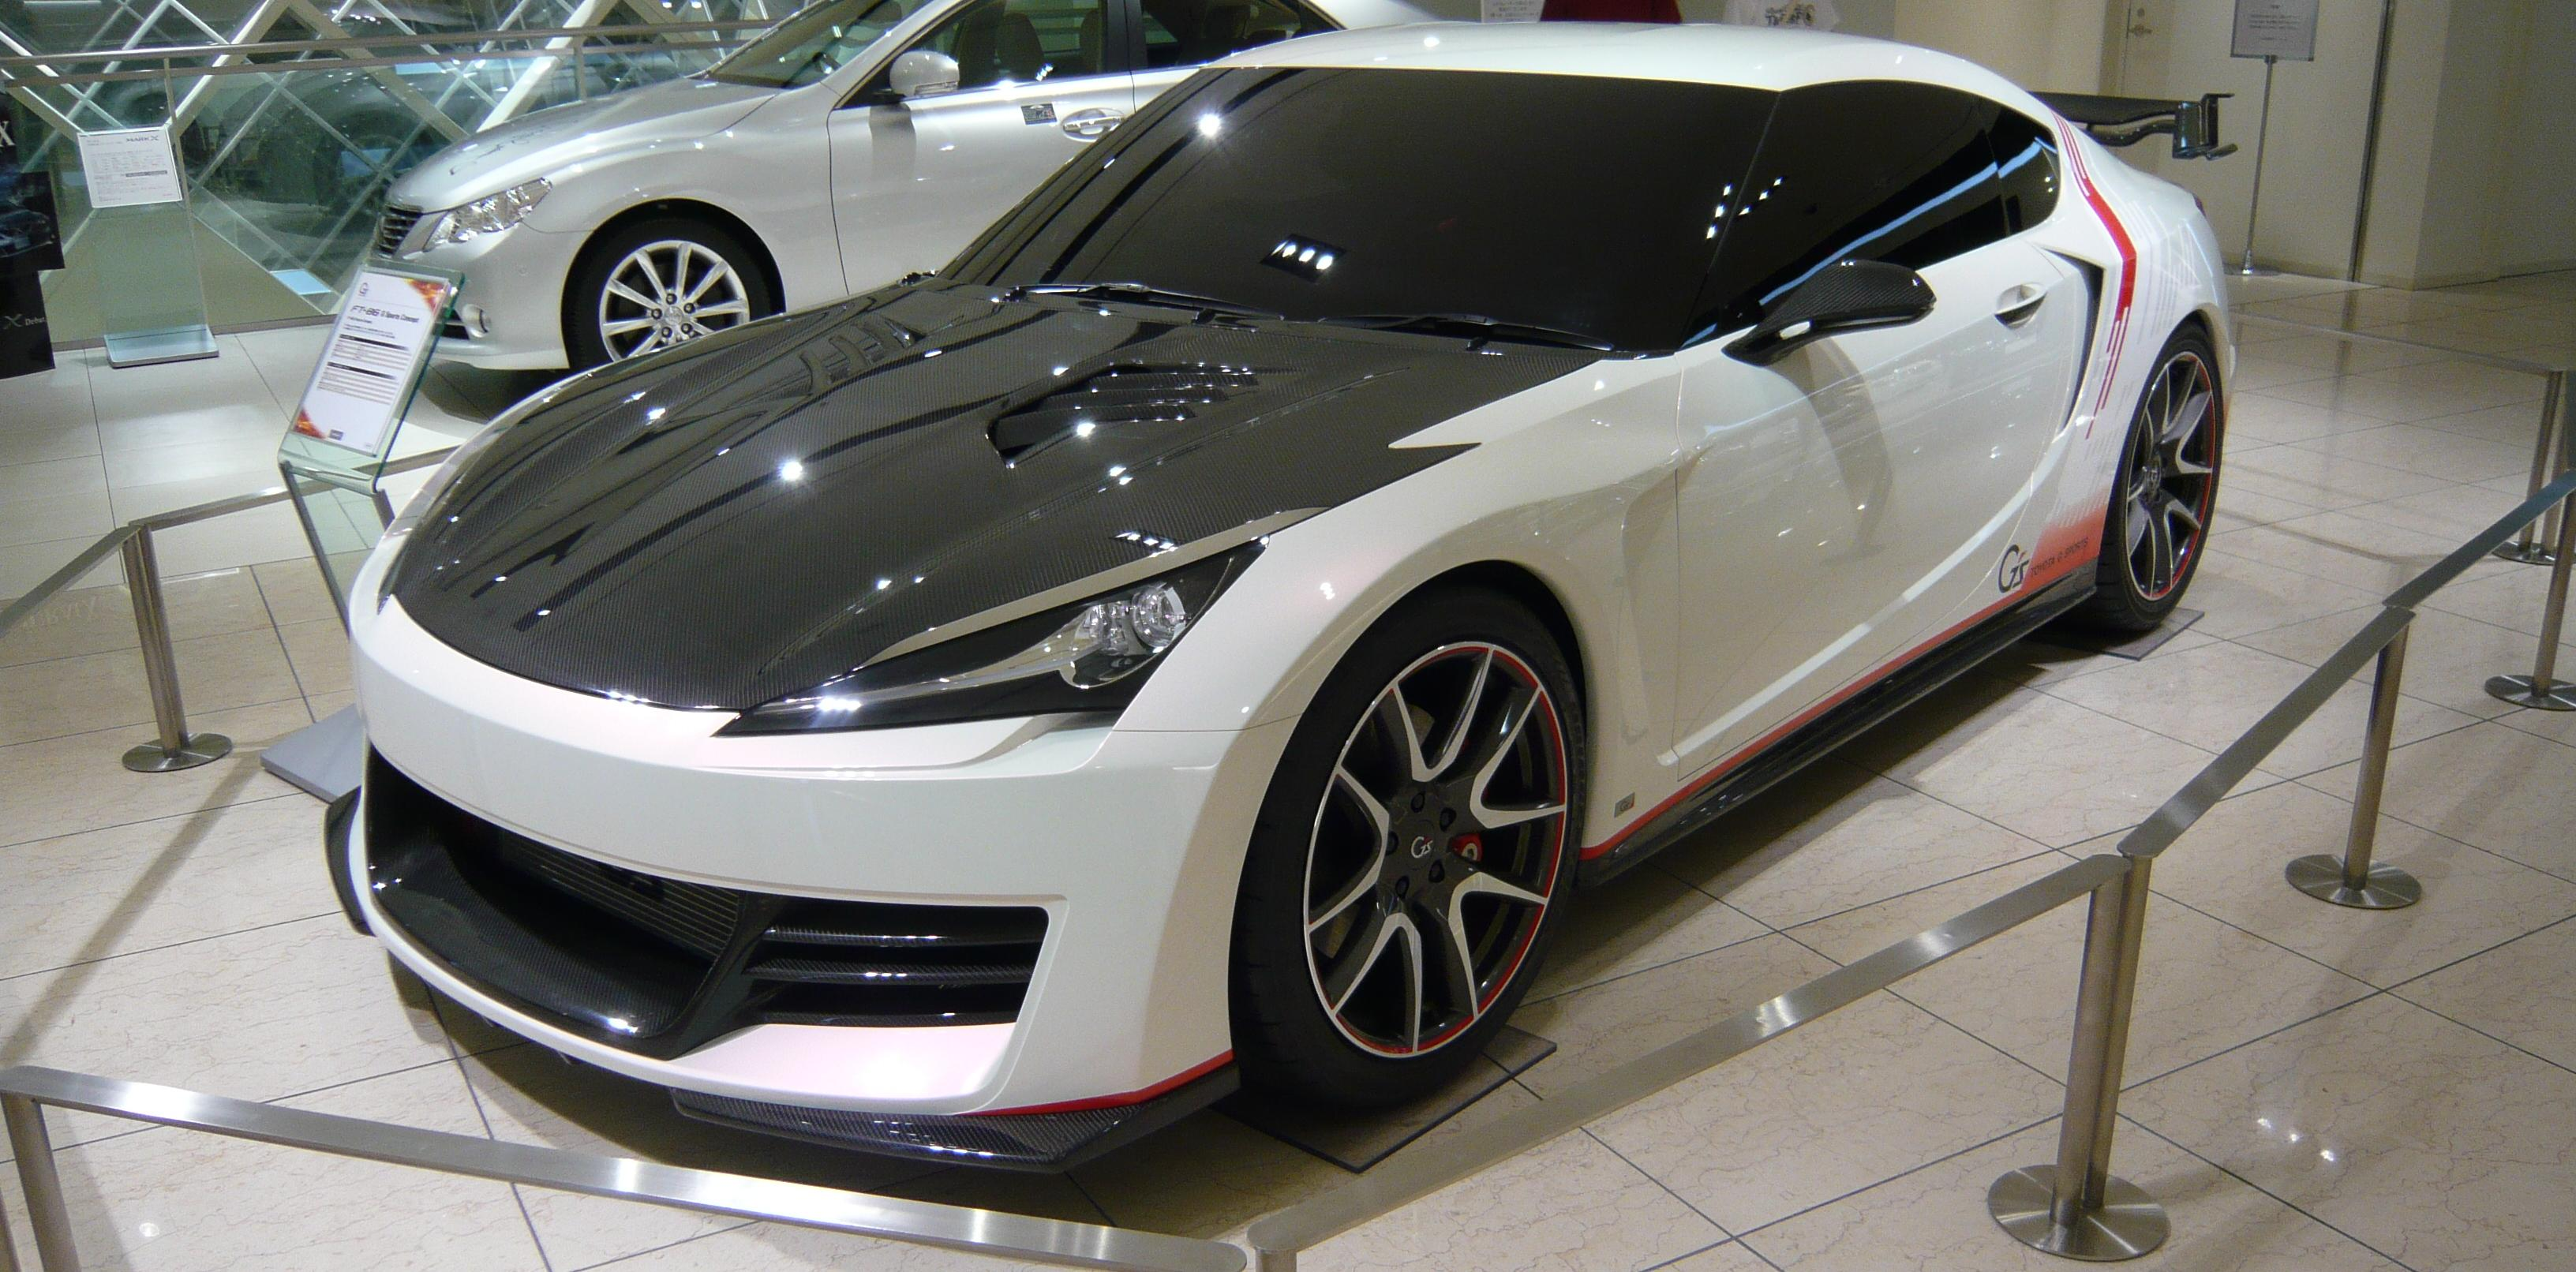 Toyota Ft 86 >> File Toyota Ft 86 Gs1001 Jpg Wikimedia Commons